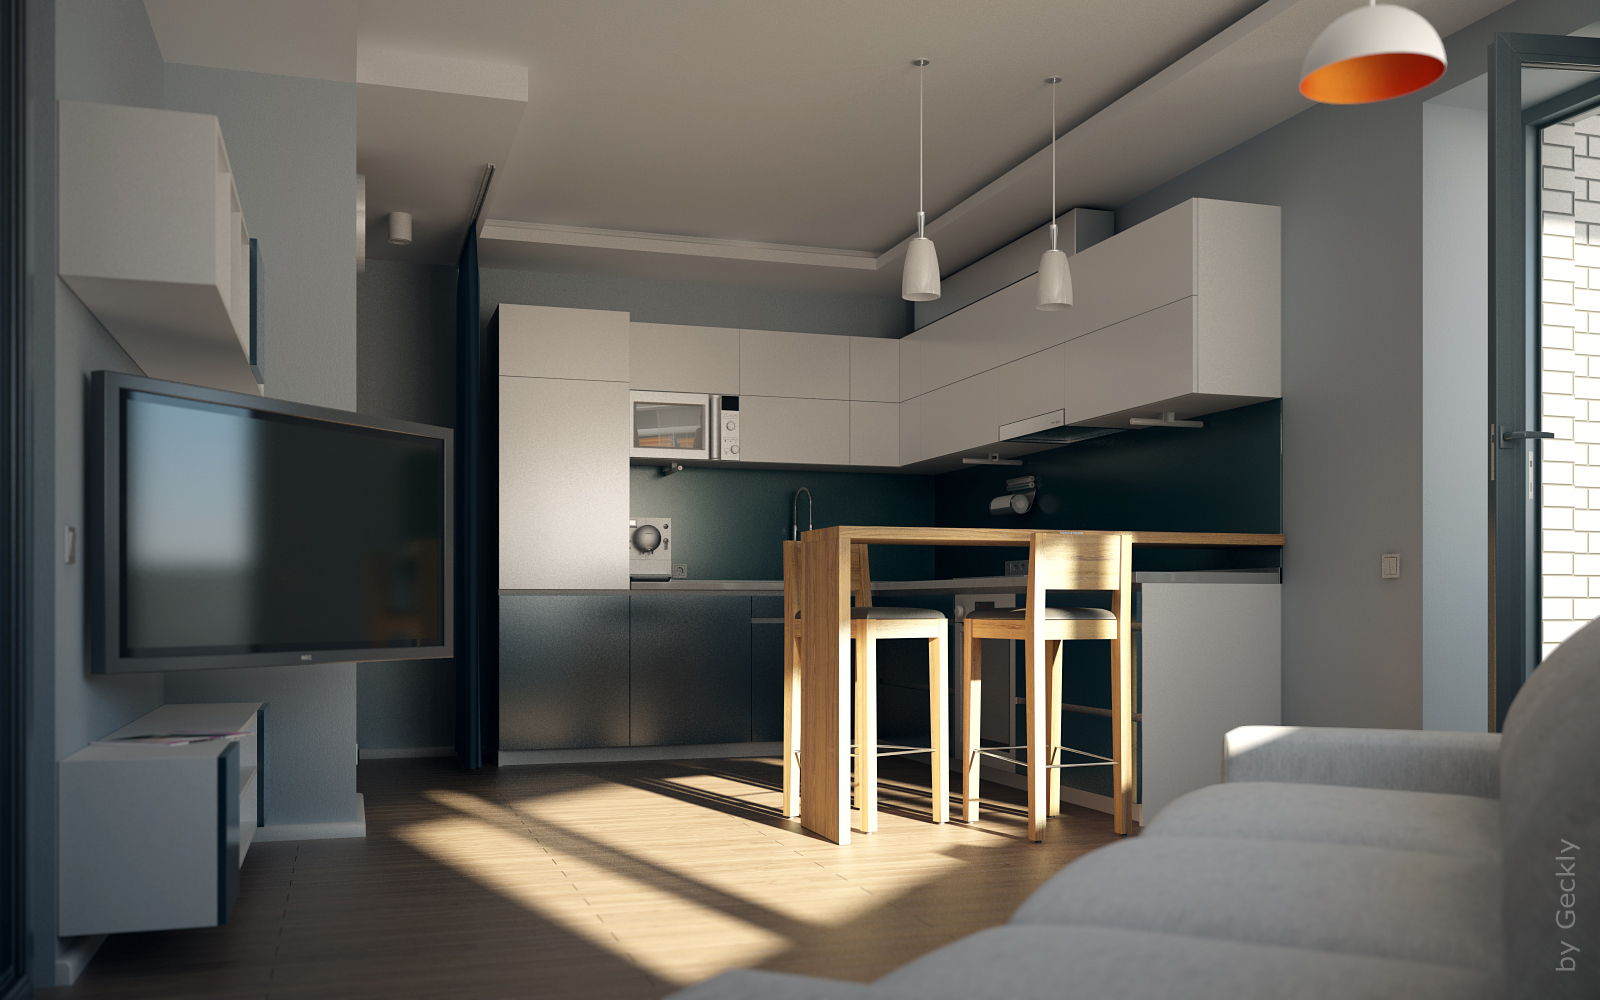 Small flat 001 by geckly on deviantart for Flat interior images